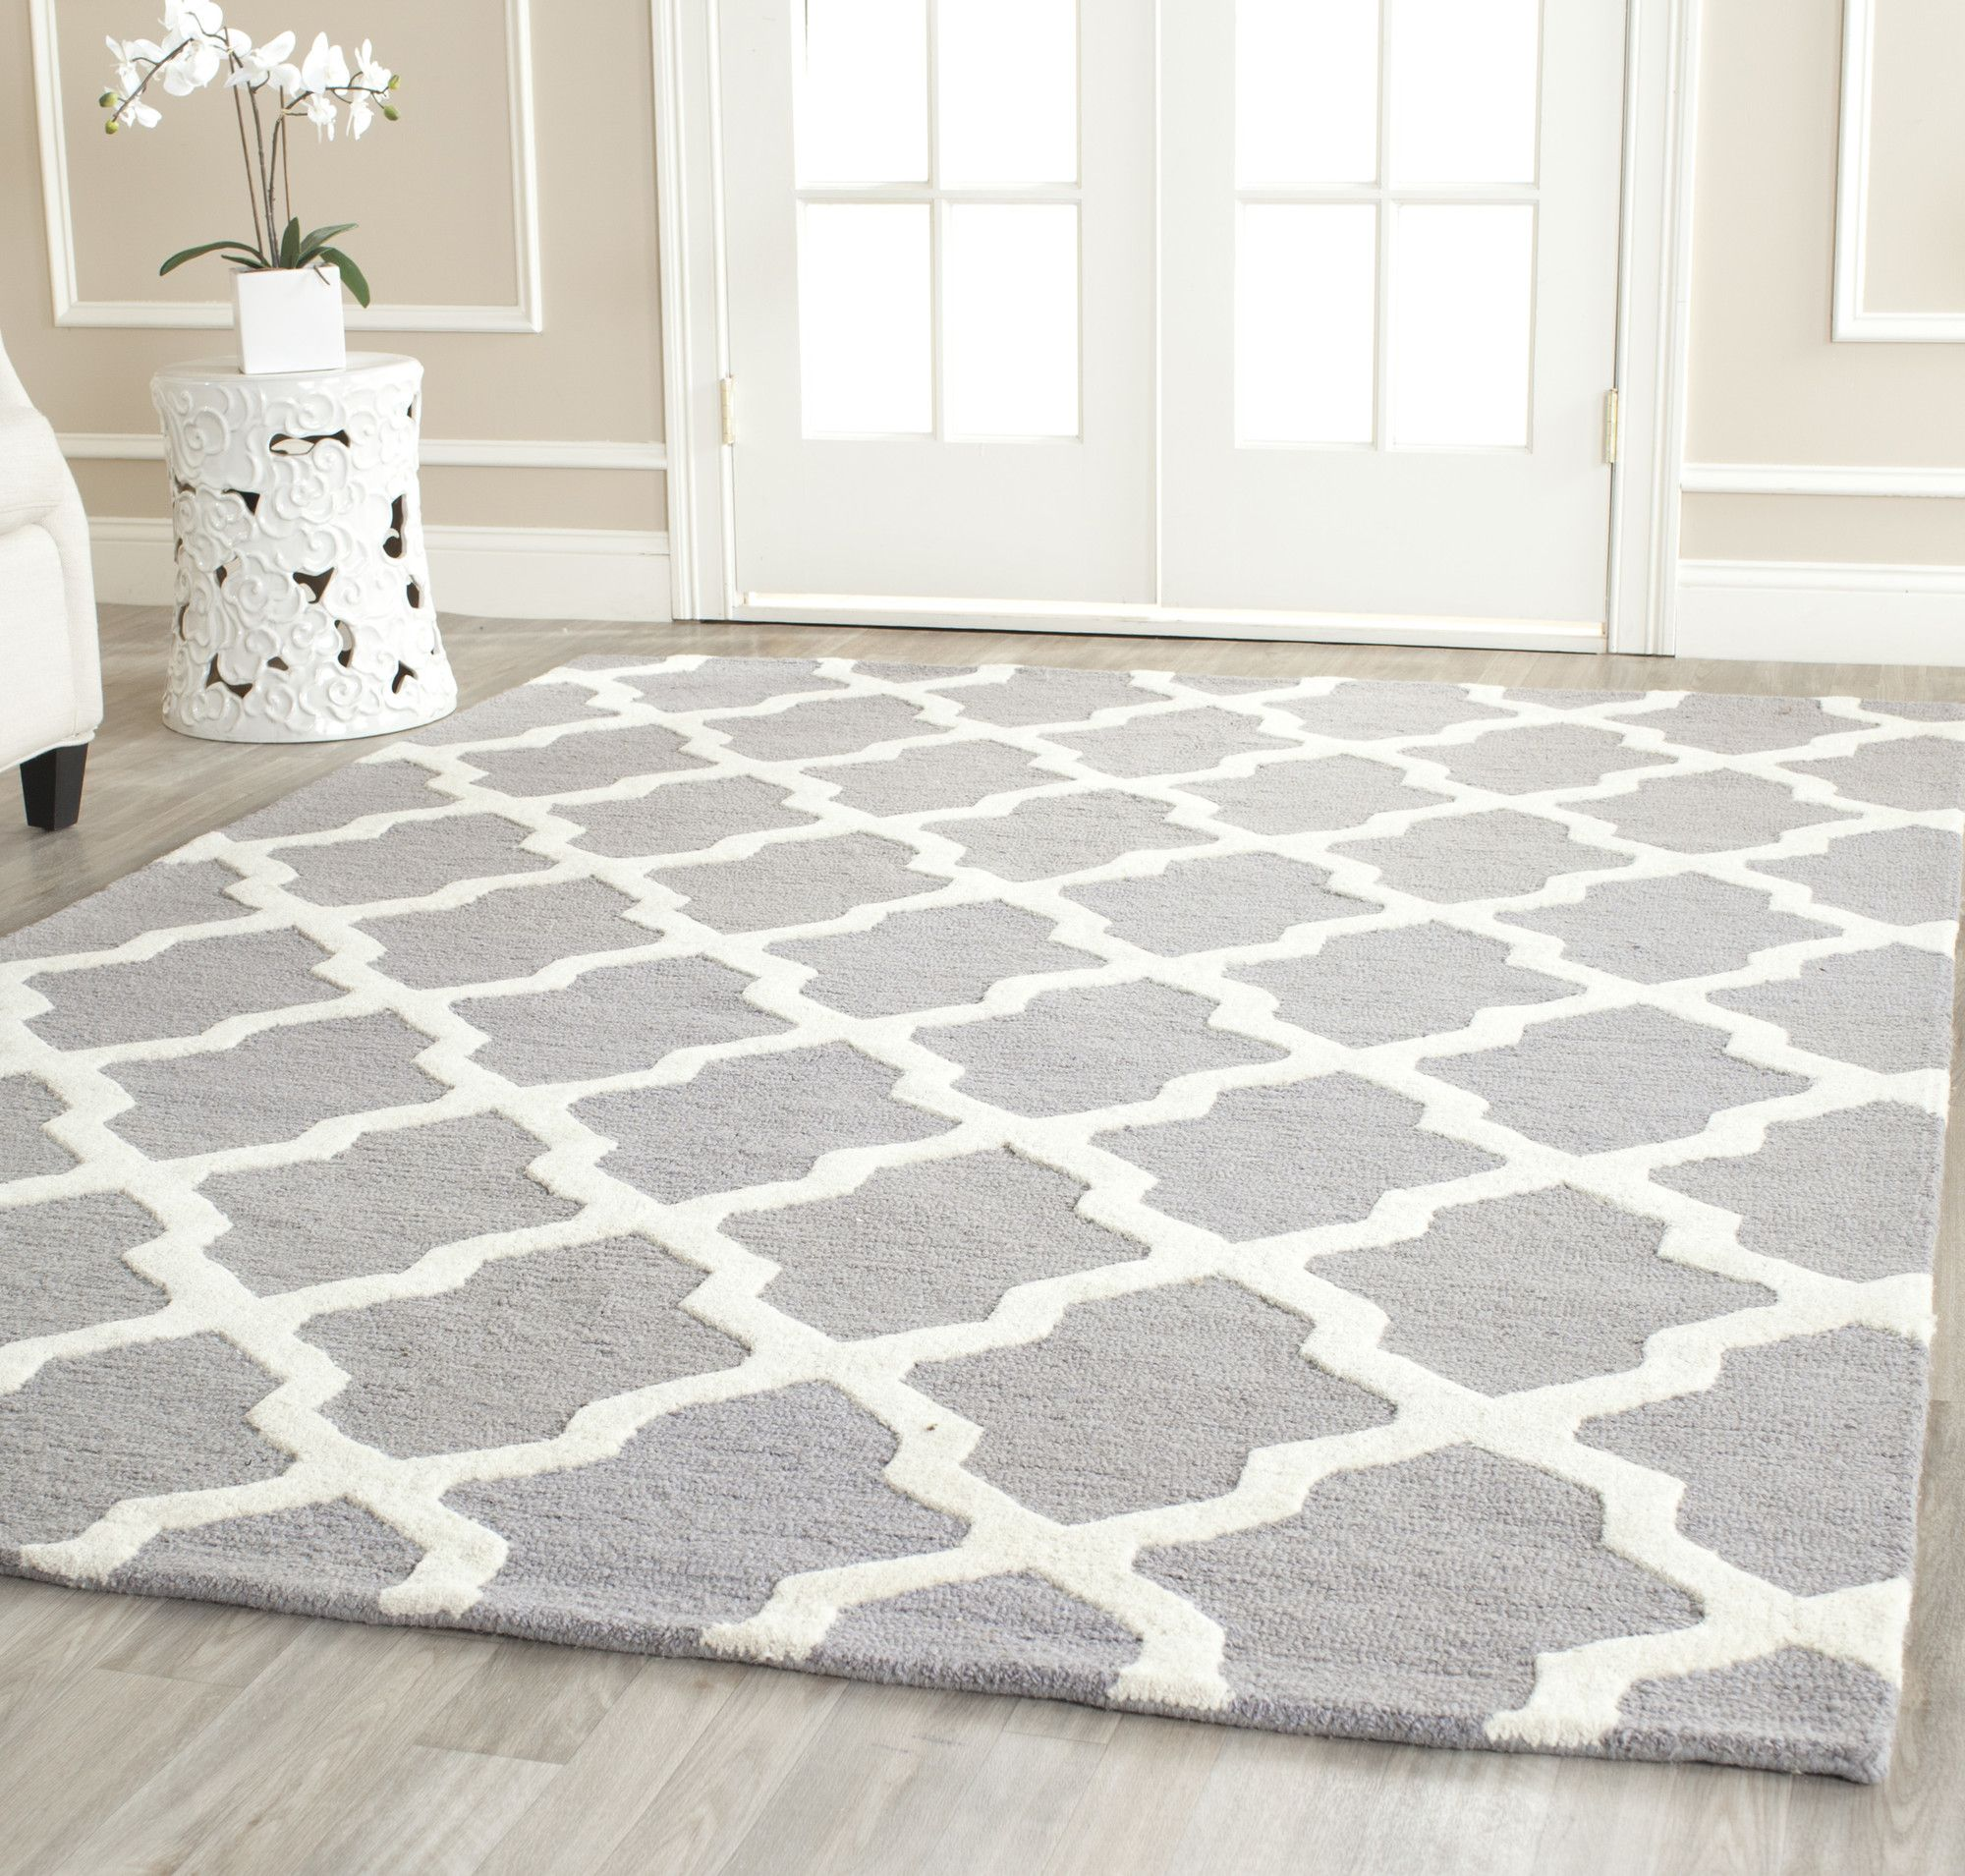 163 222 Safavieh Brady Grey Rug Amp Reviews Wayfair Uk No